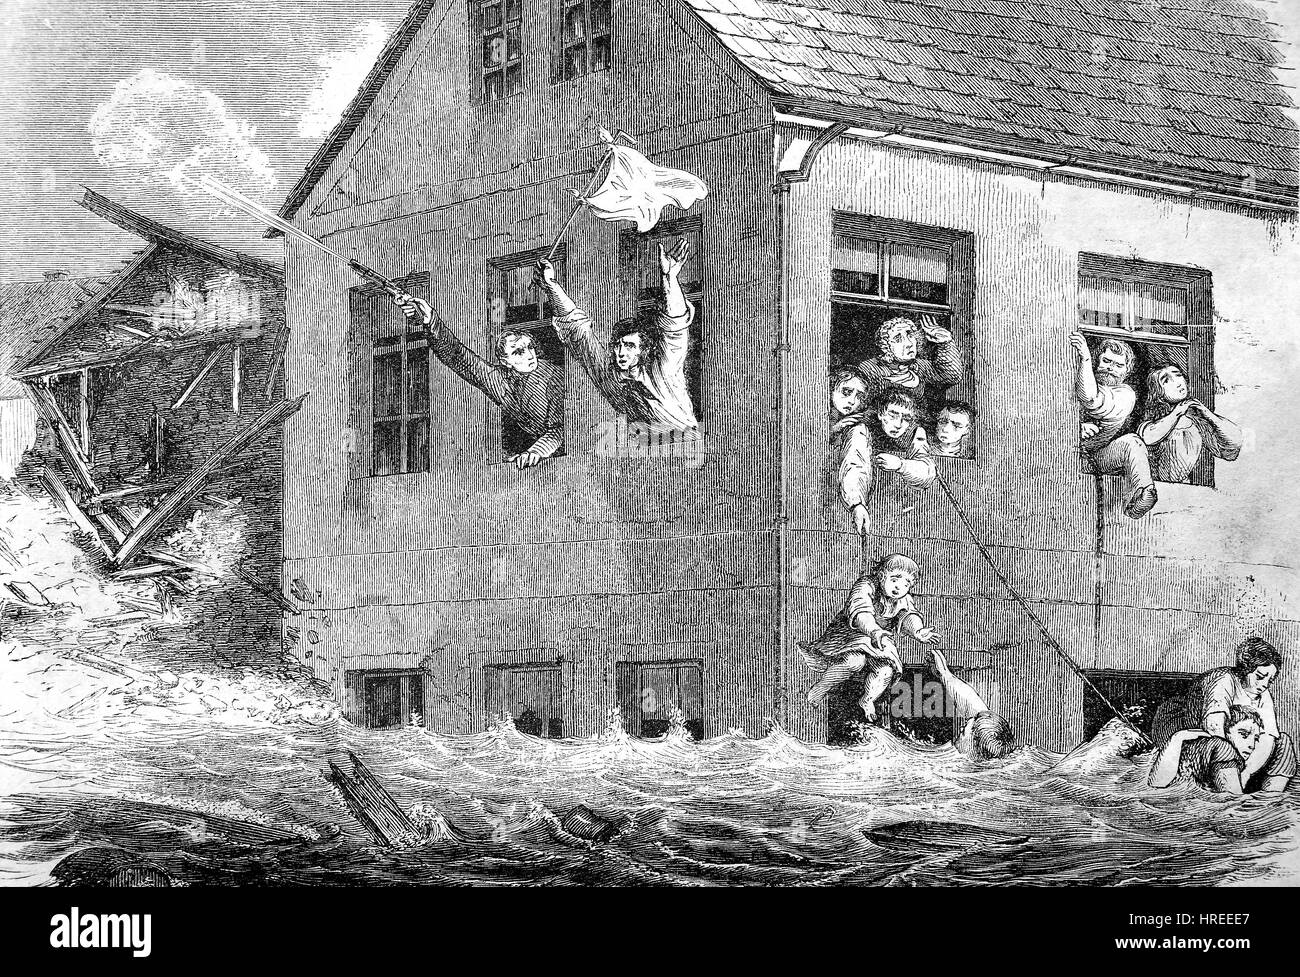 Water flood, rescue scene of persons from a house, Saxony, Germany, 1854, an article in - The Gartenlaube - Illustrated - Stock Image